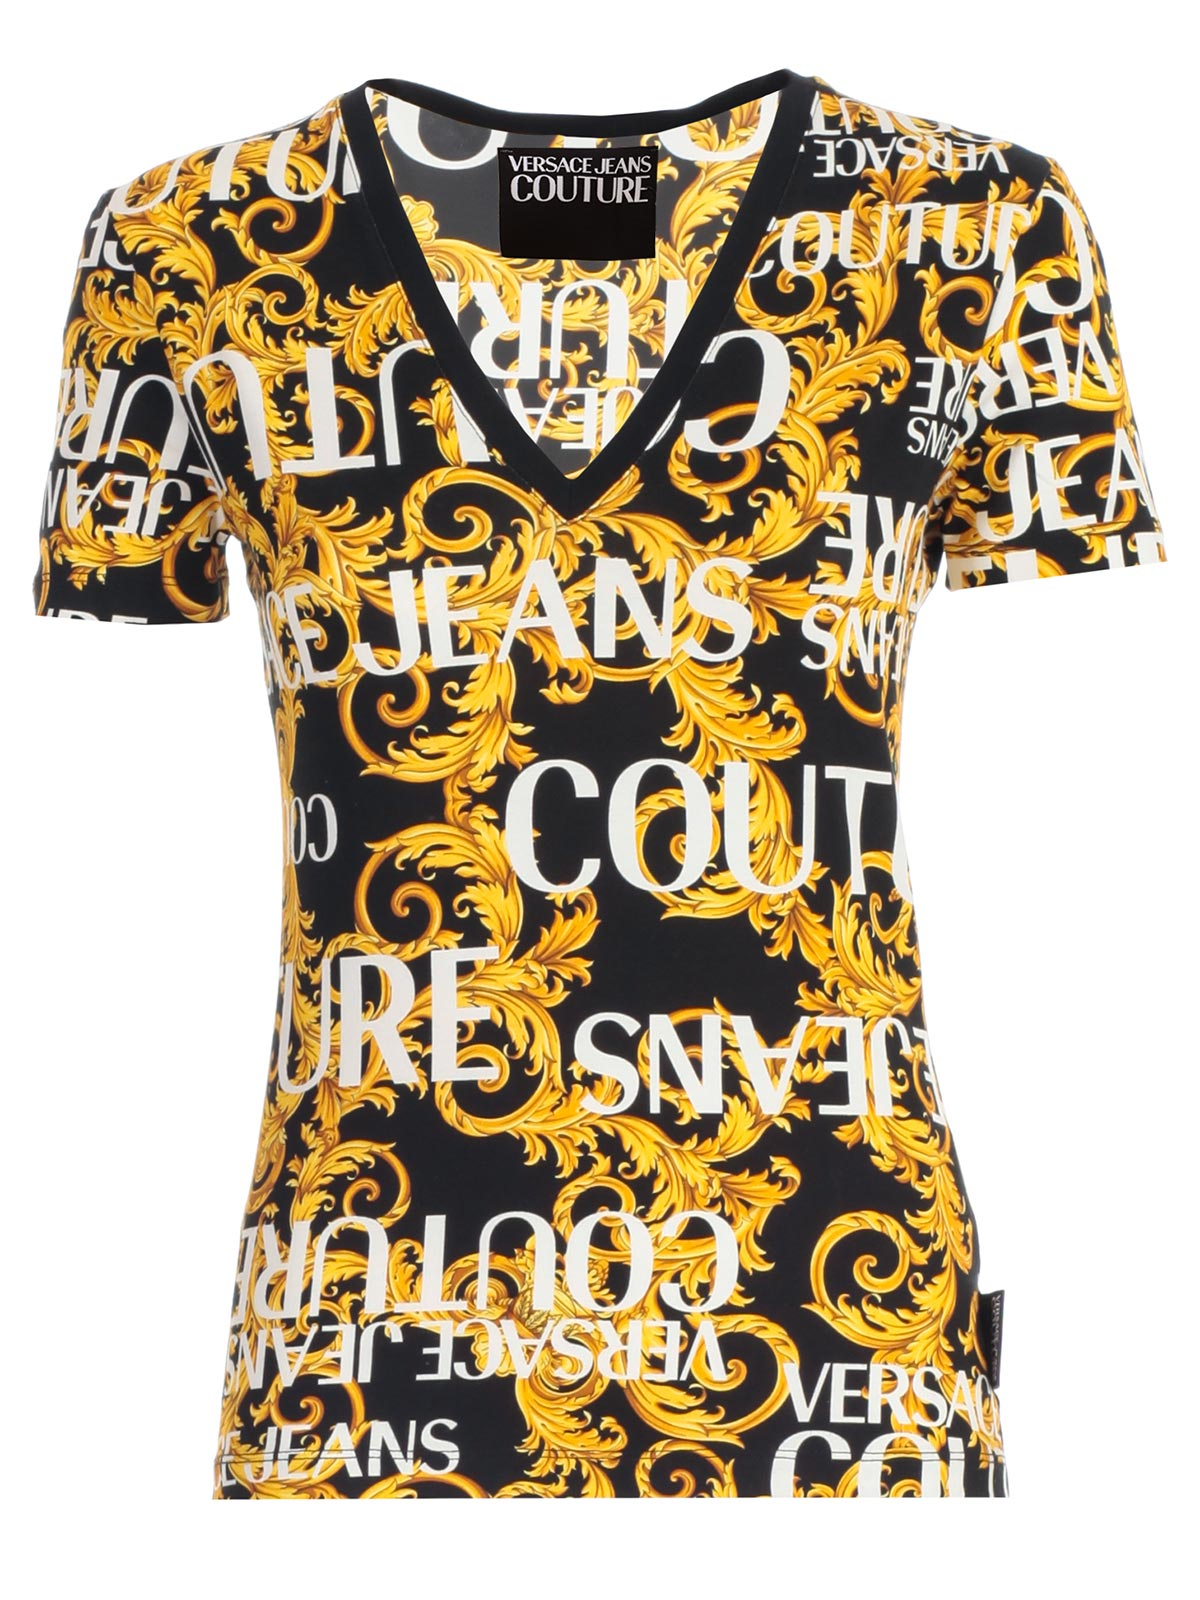 664727b9a Versace Jeans Couture T- Shirt